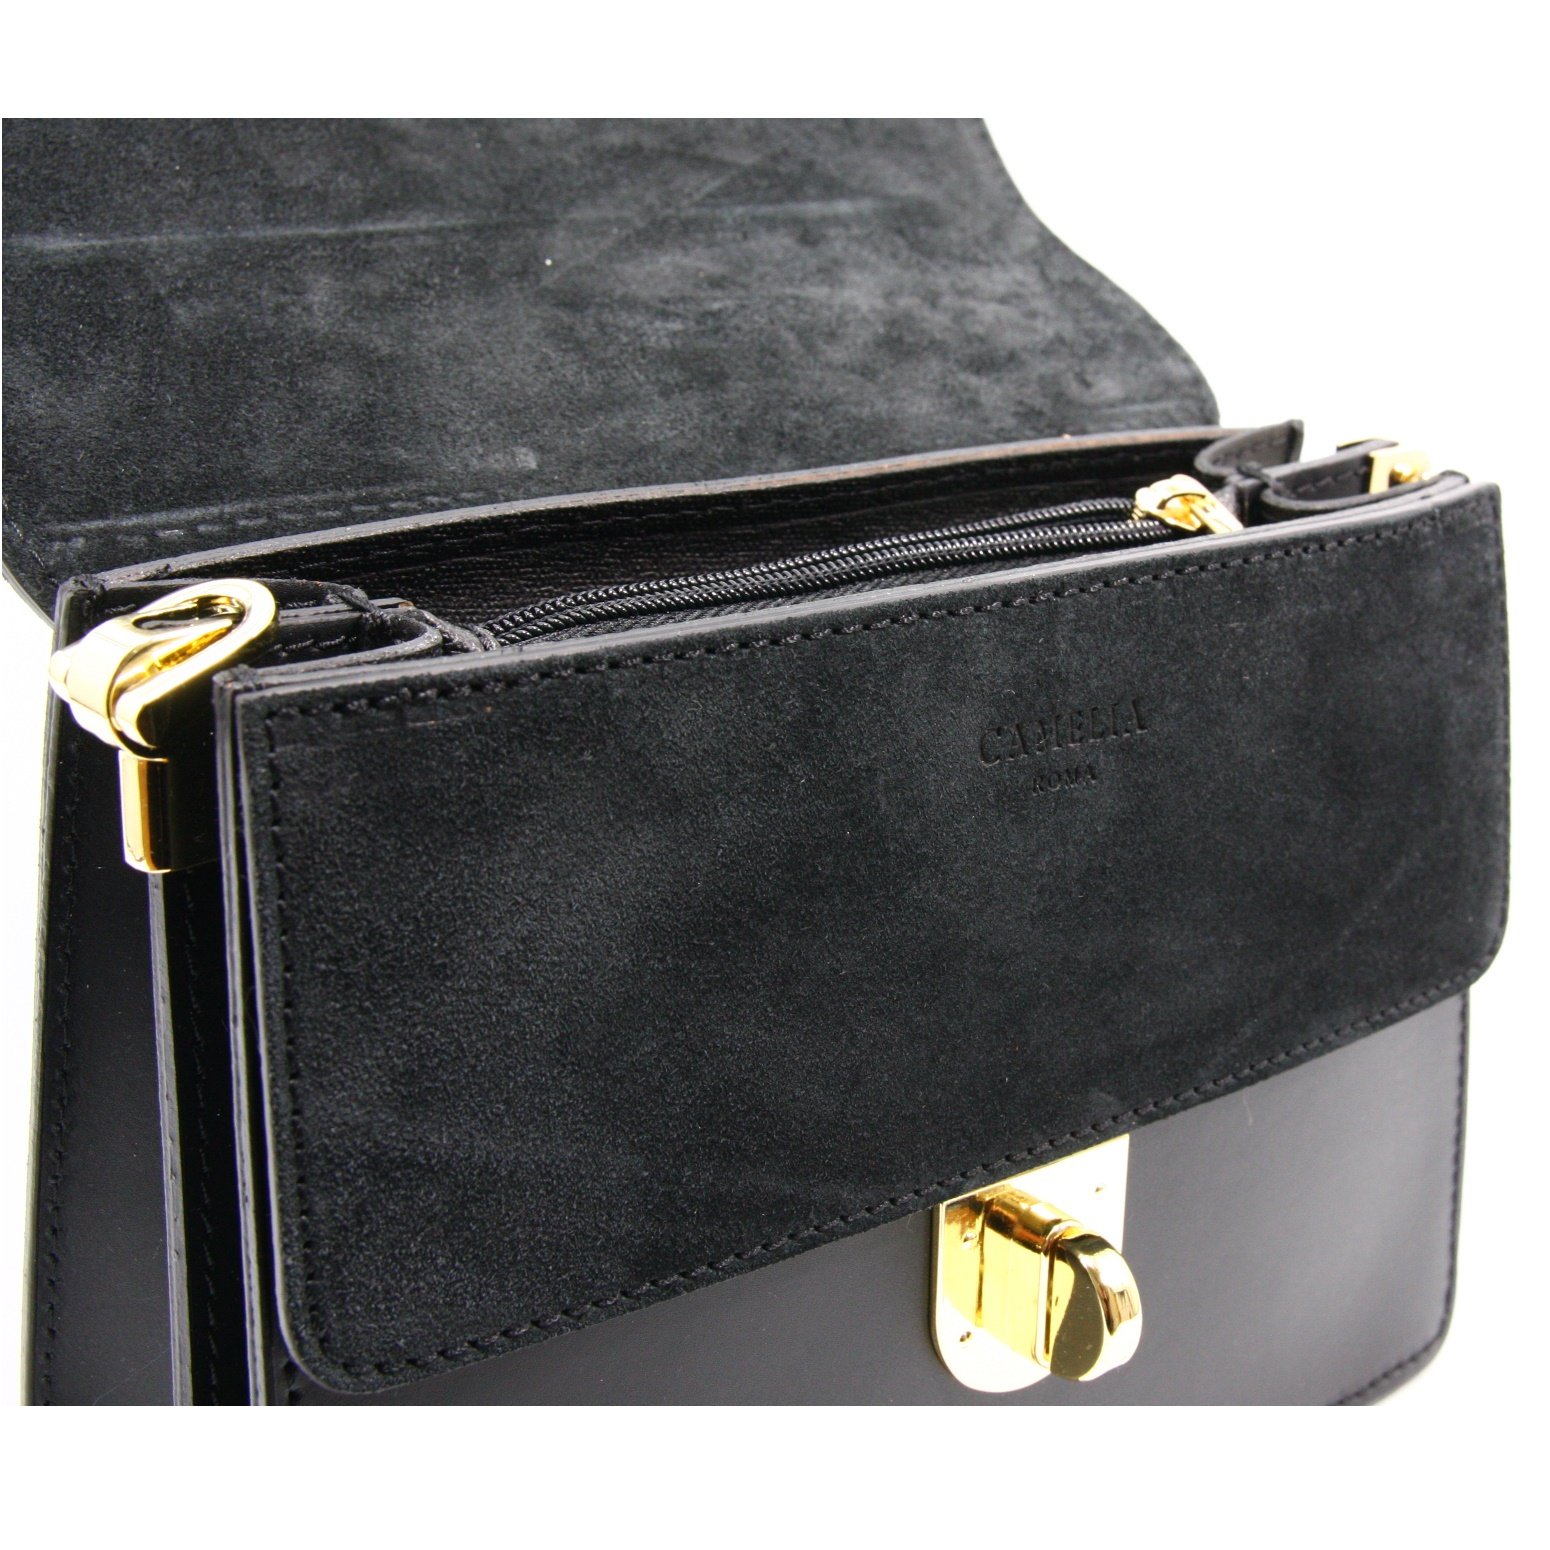 LEATHER AND SUEDE CROSSBODY BAG TRACOLLA_0044_NE COLOR: BLACK